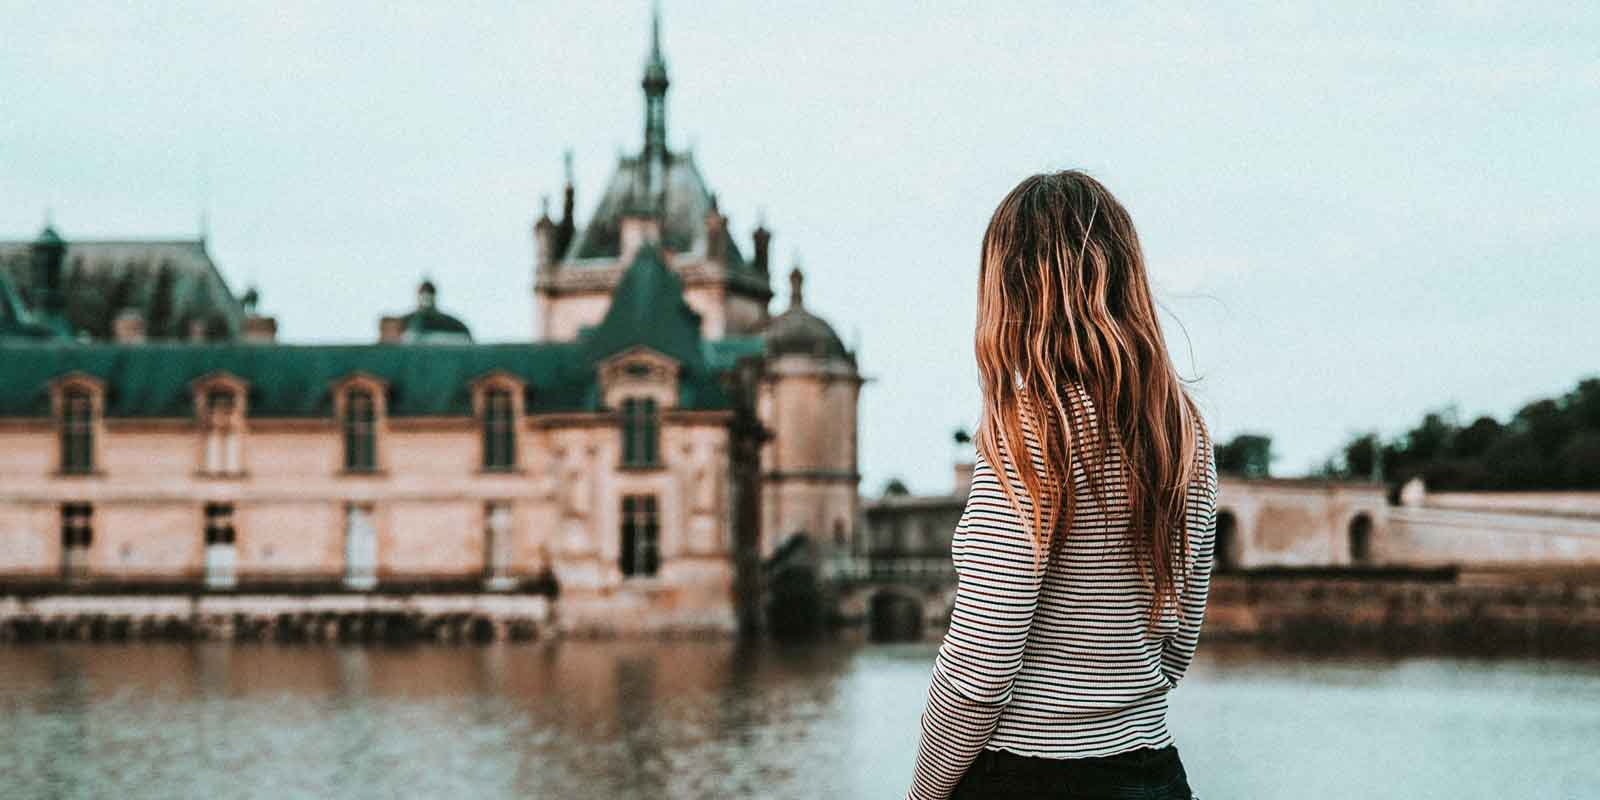 Landscape view of a woman looking at the Château de Chantilly in the background.